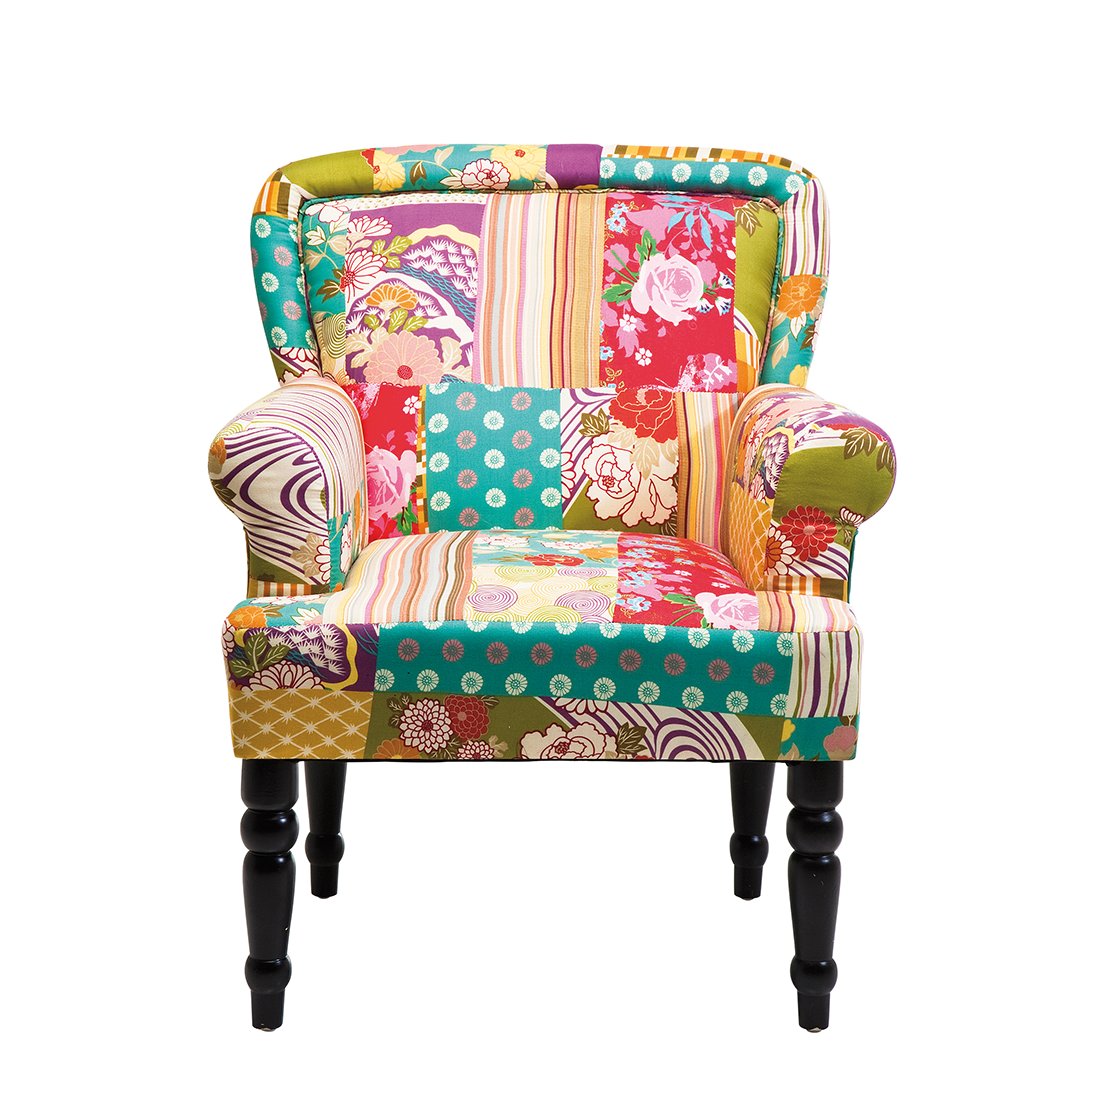 Patchwork Ohrensessel Patchwork Sessel Stunning Chairs Pinterest